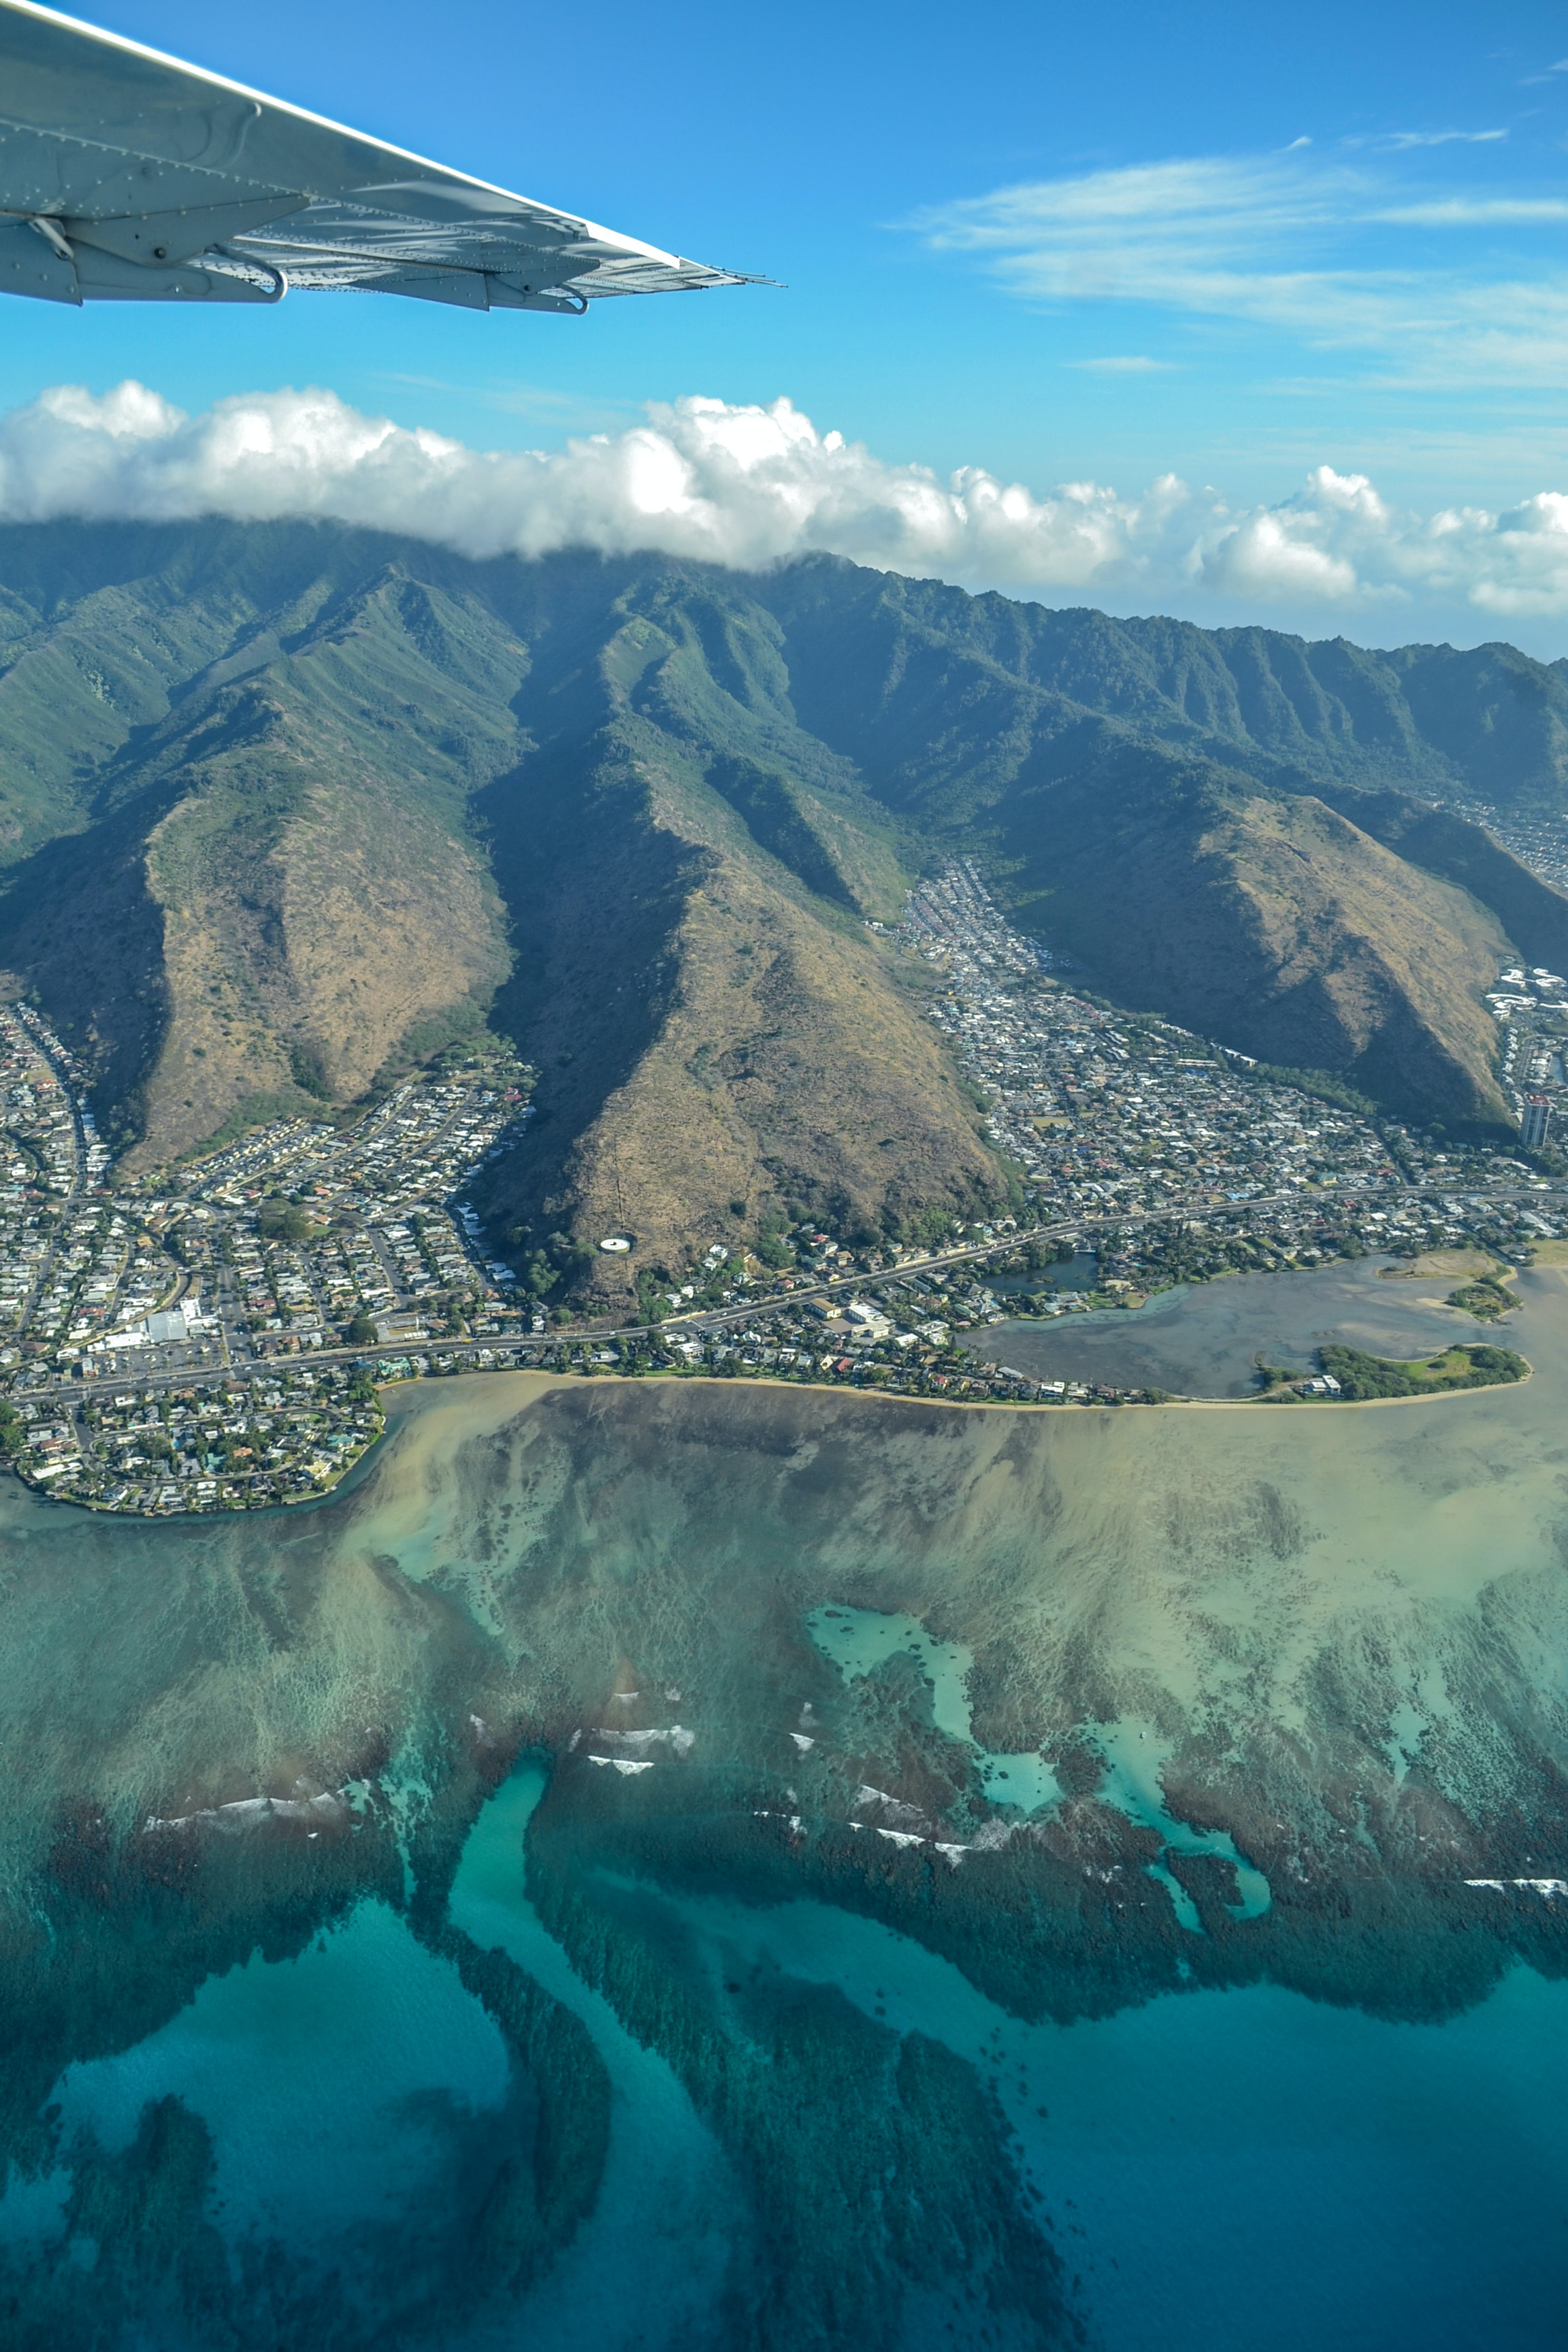 Aerial view of a mountain town along the coast from a plane in O'ahu